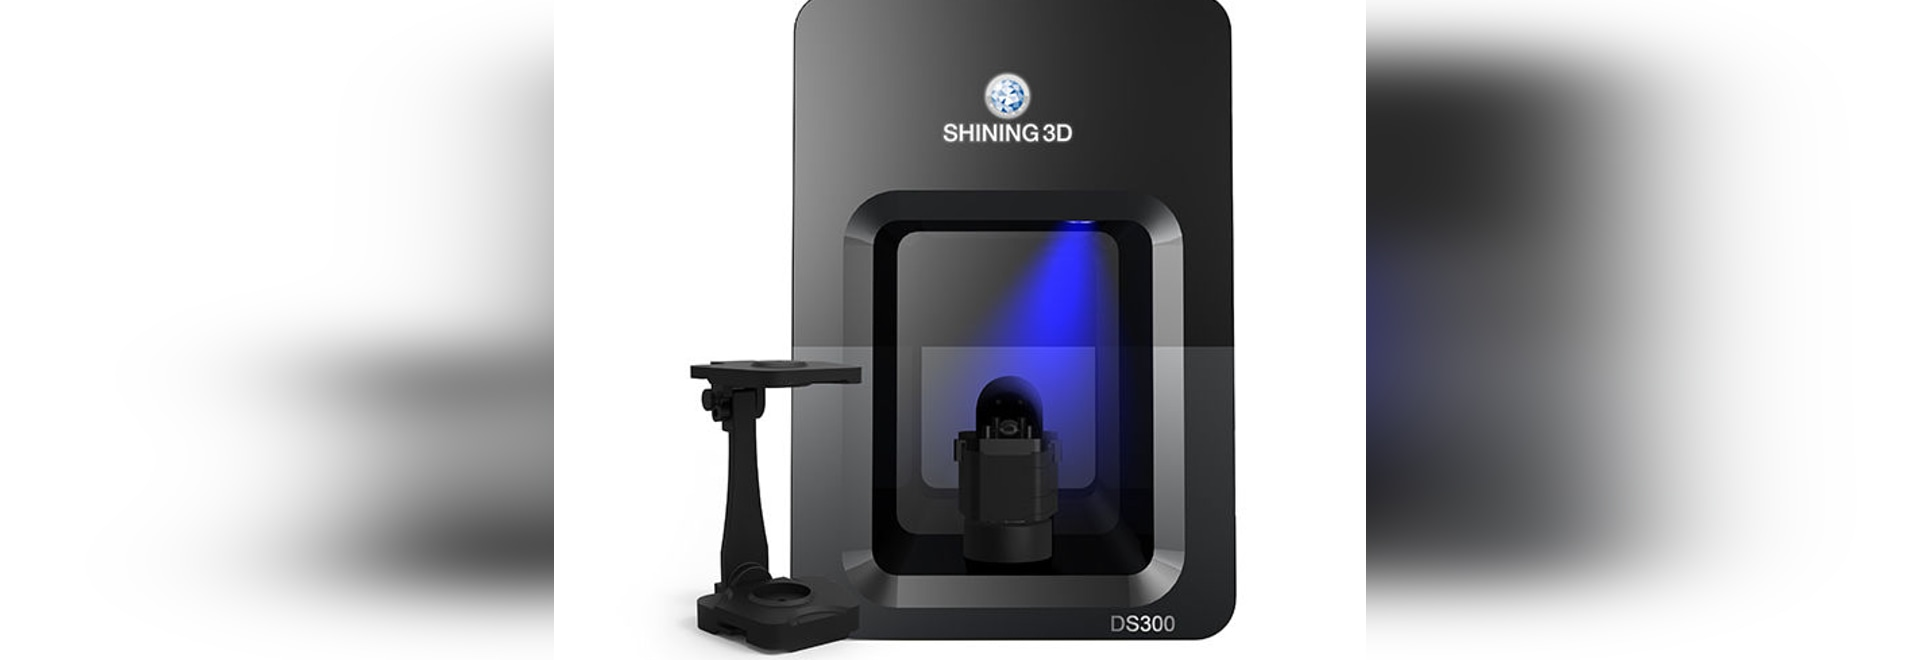 NEW dental 3D scanner AutoScan-DS300 by Shining 3D